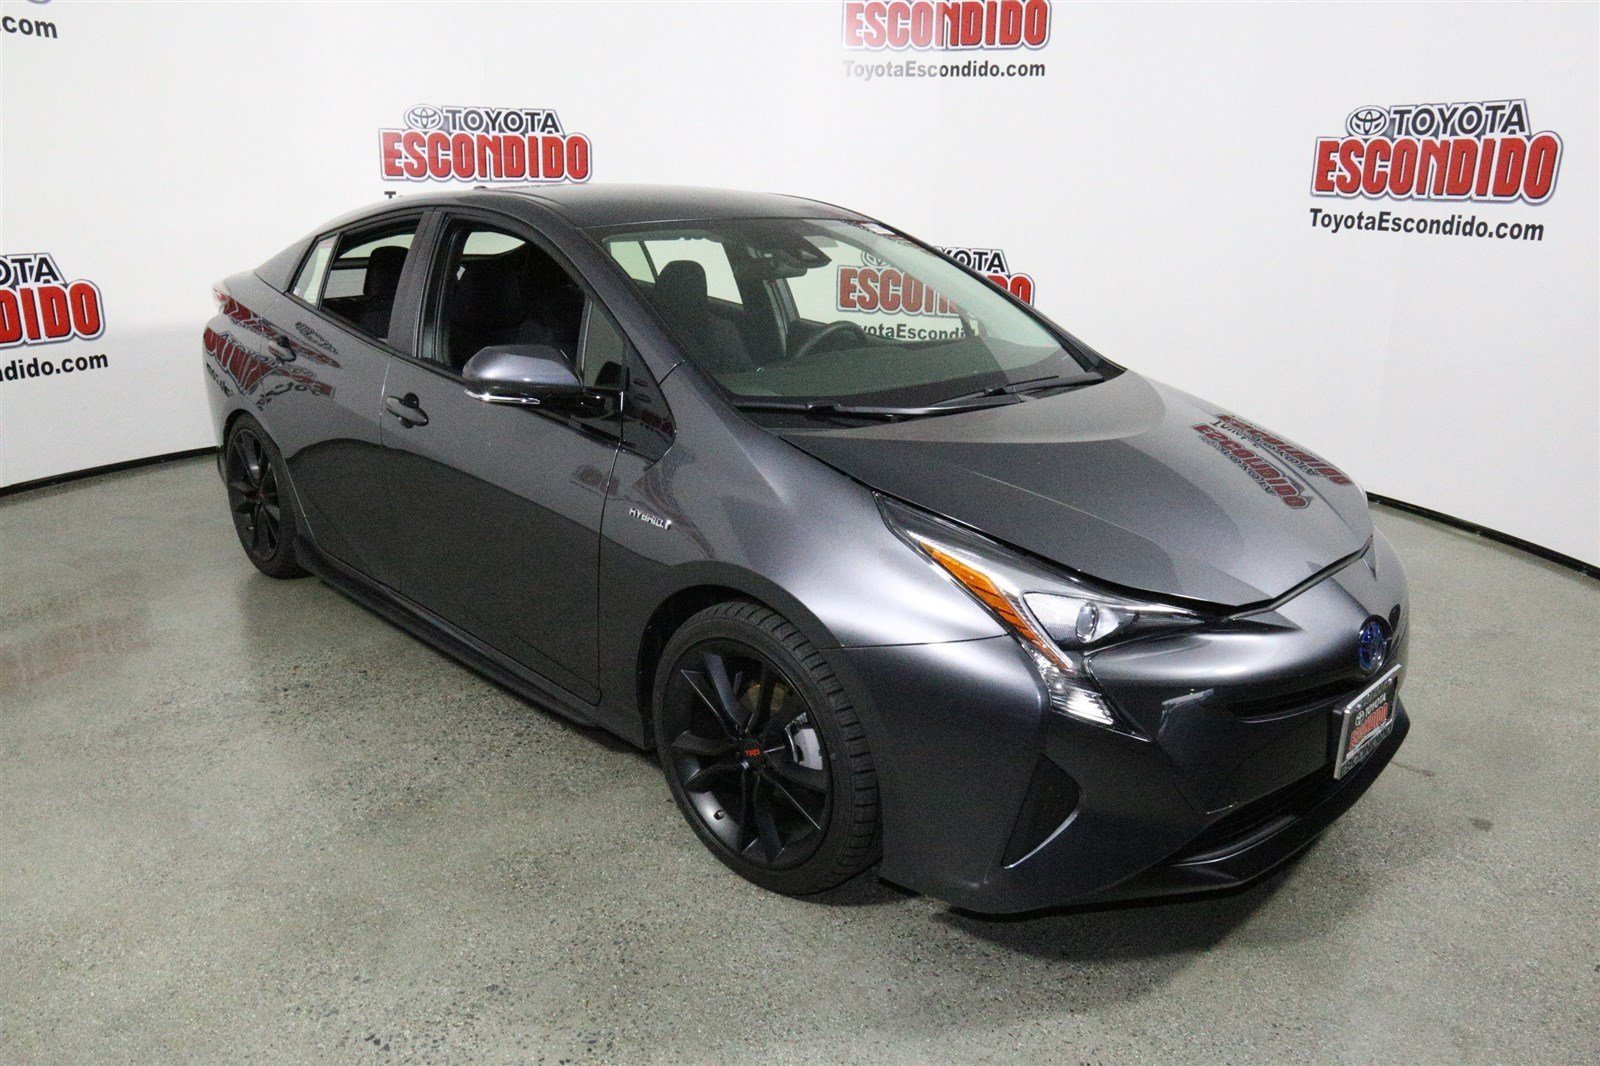 new 2017 toyota prius two eco hatchback in escondido 1013940 toyota escondido. Black Bedroom Furniture Sets. Home Design Ideas